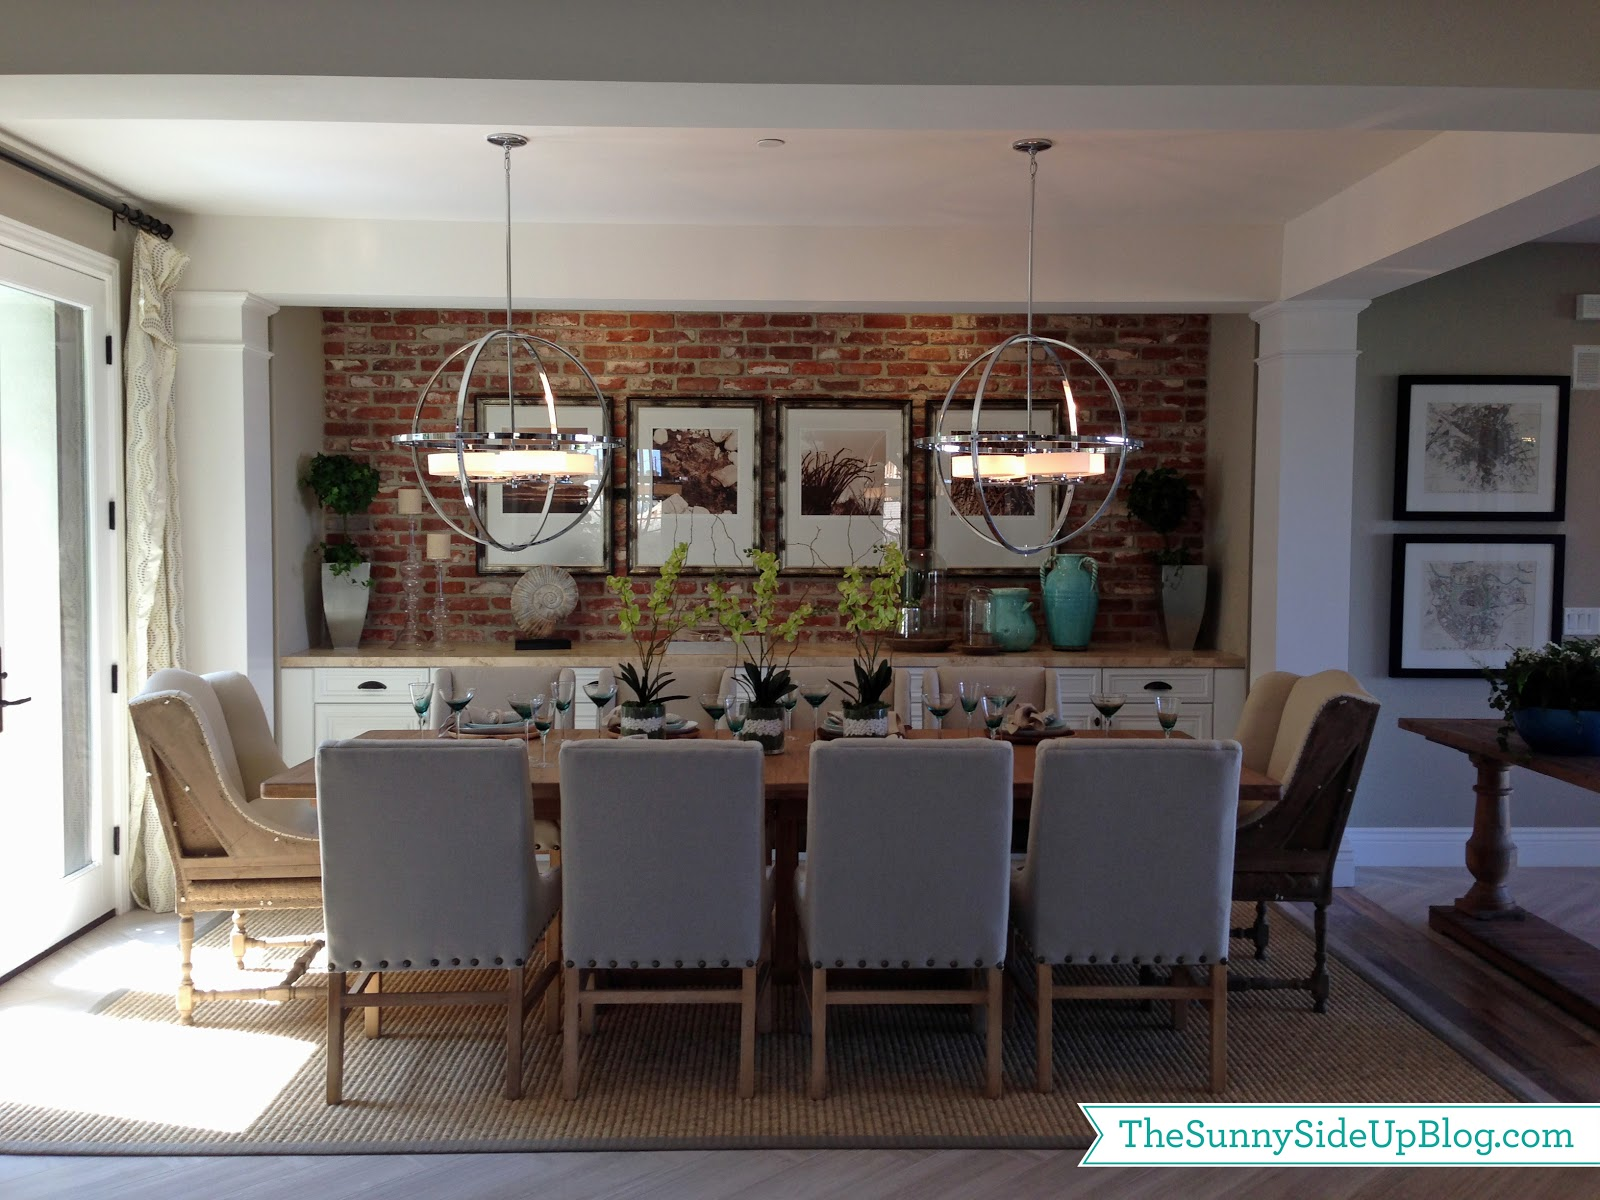 Fun decor model home the sunny side up blog for Model home dining room